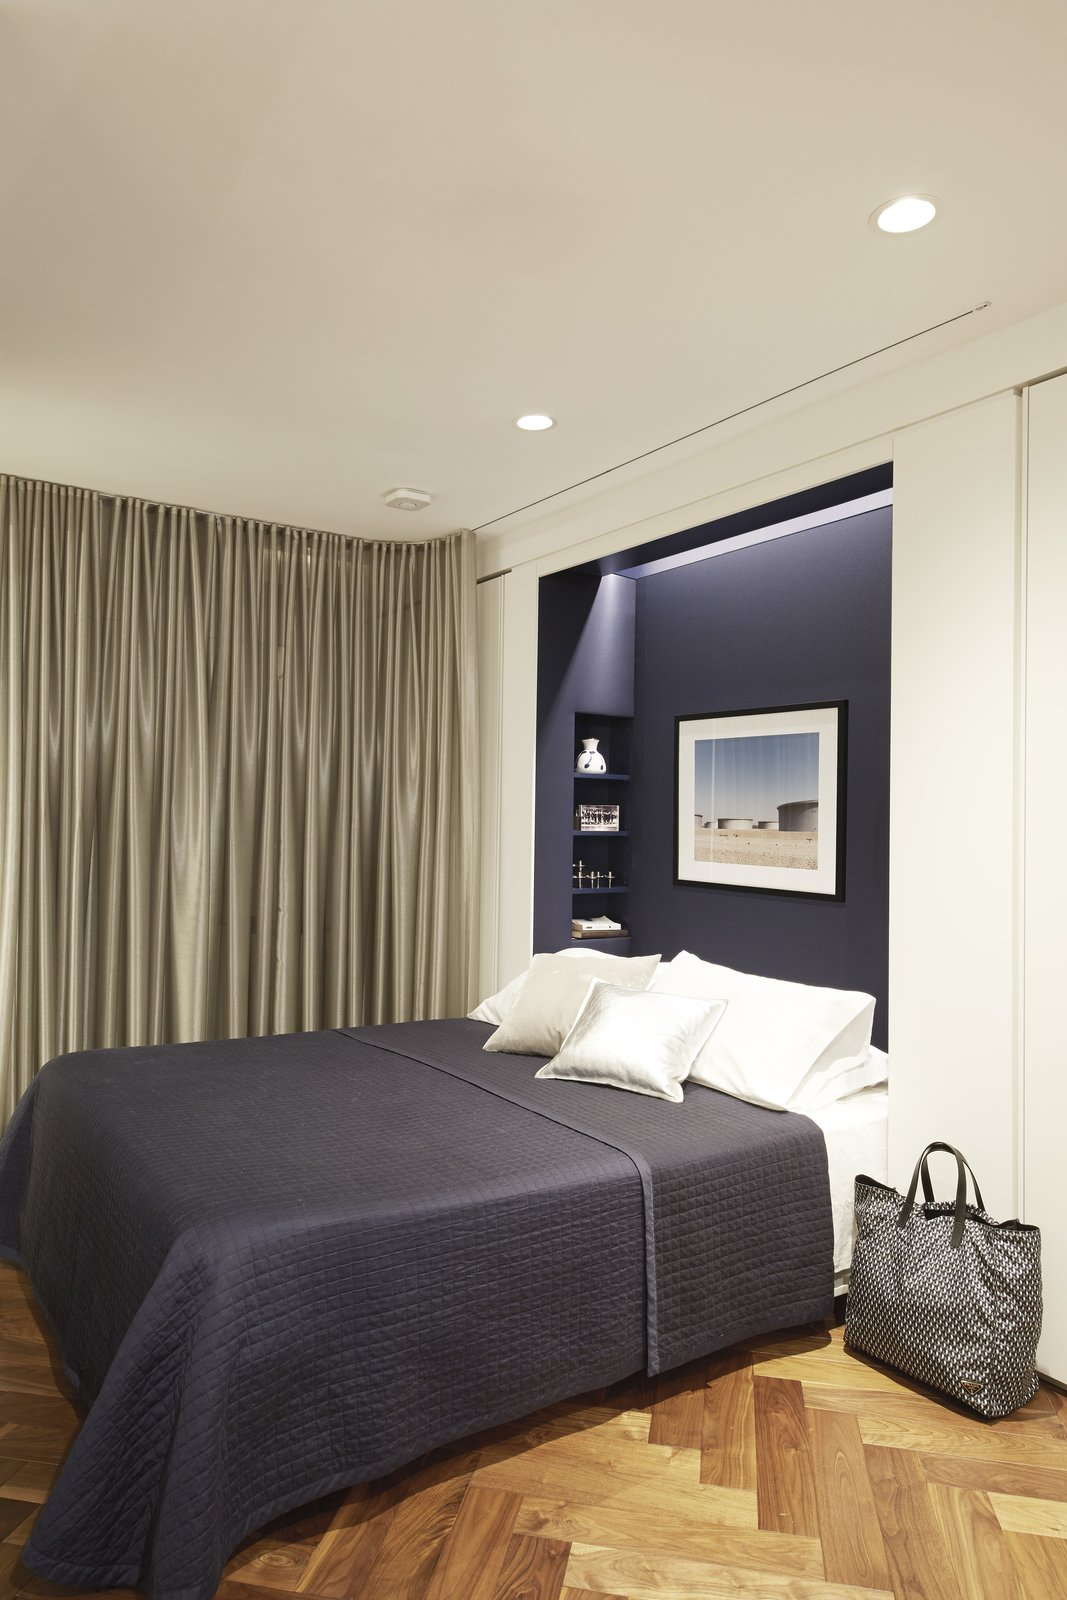 Bedroom, Bed, Medium Hardwood Floor, and Recessed Lighting The Murphy bed niche is lined in deep blue fabric by Knoll.  Photo 9 of 11 in In Just 450 Square Feet, A New York Architect Crafts a Multifunctional Apartment of His Own